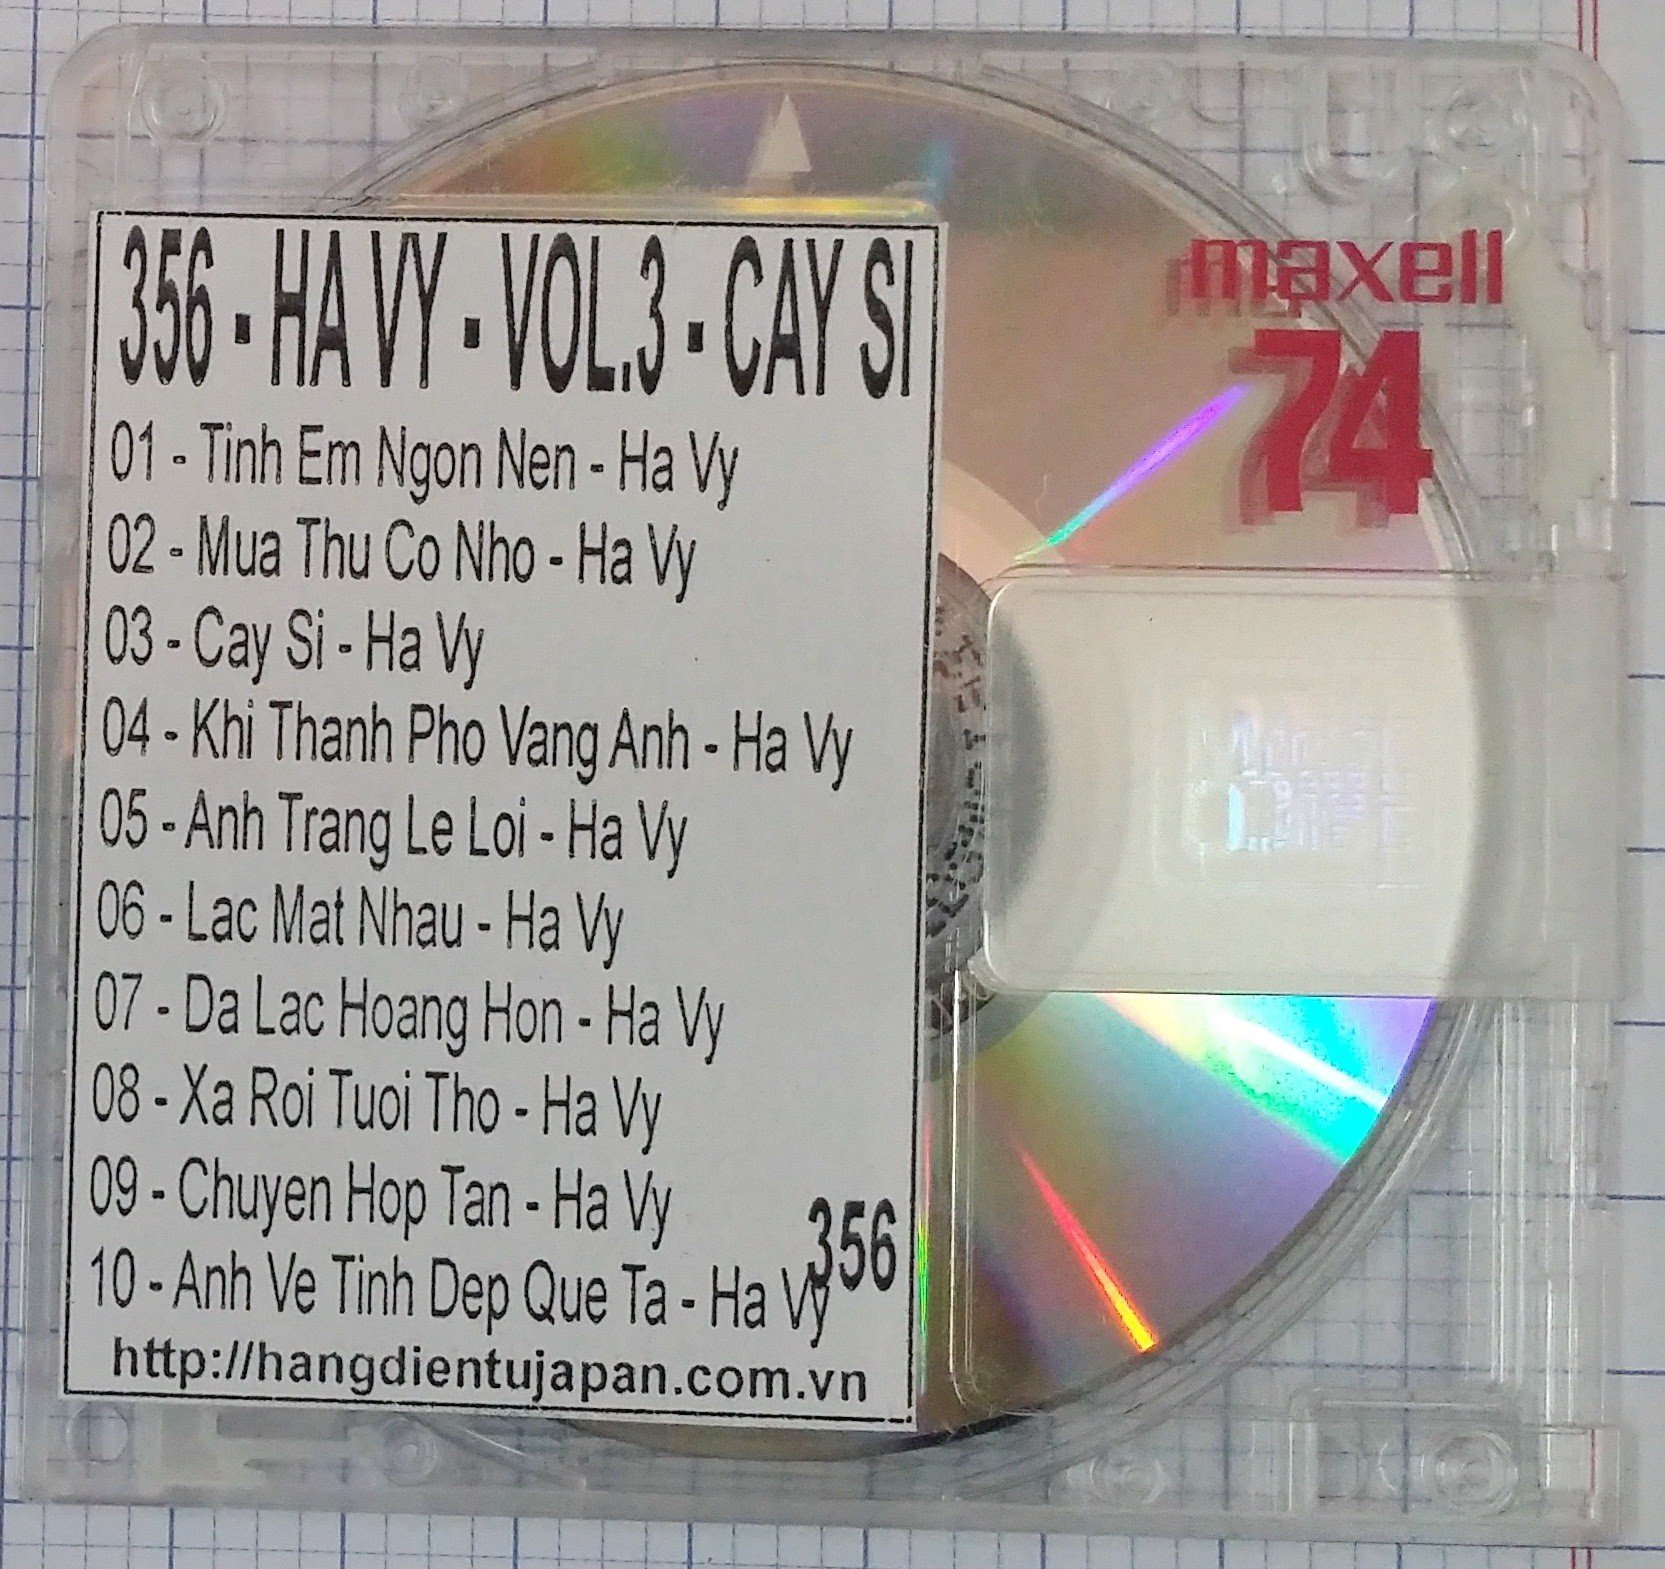 356 HAI AU CD 126 - HA VY - VOL.3 - CAY SI